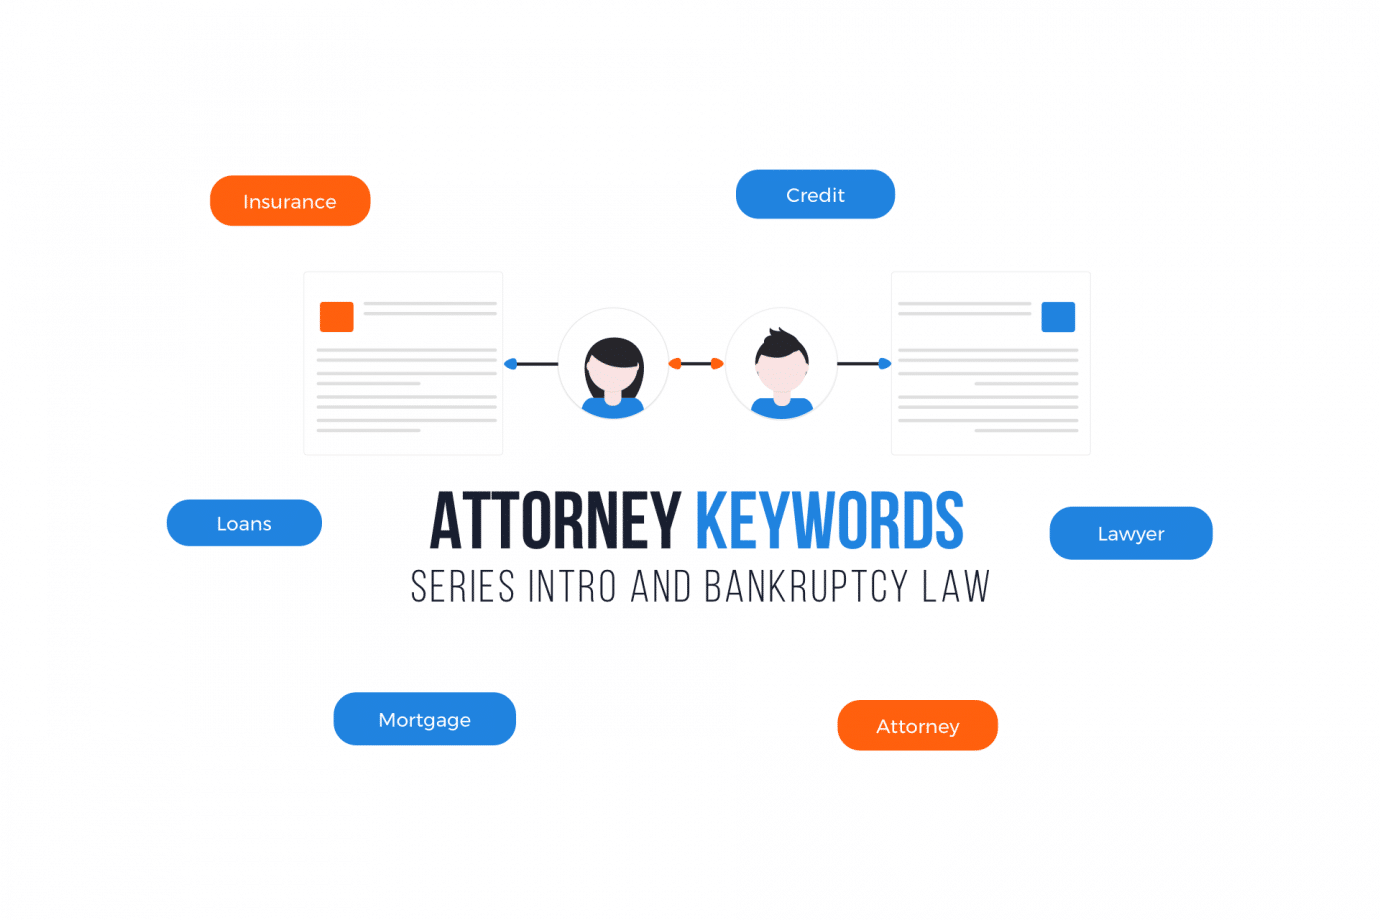 Attorney Keywords At-A-Glance by Area of Practice – Series Intro and Bankruptcy Law